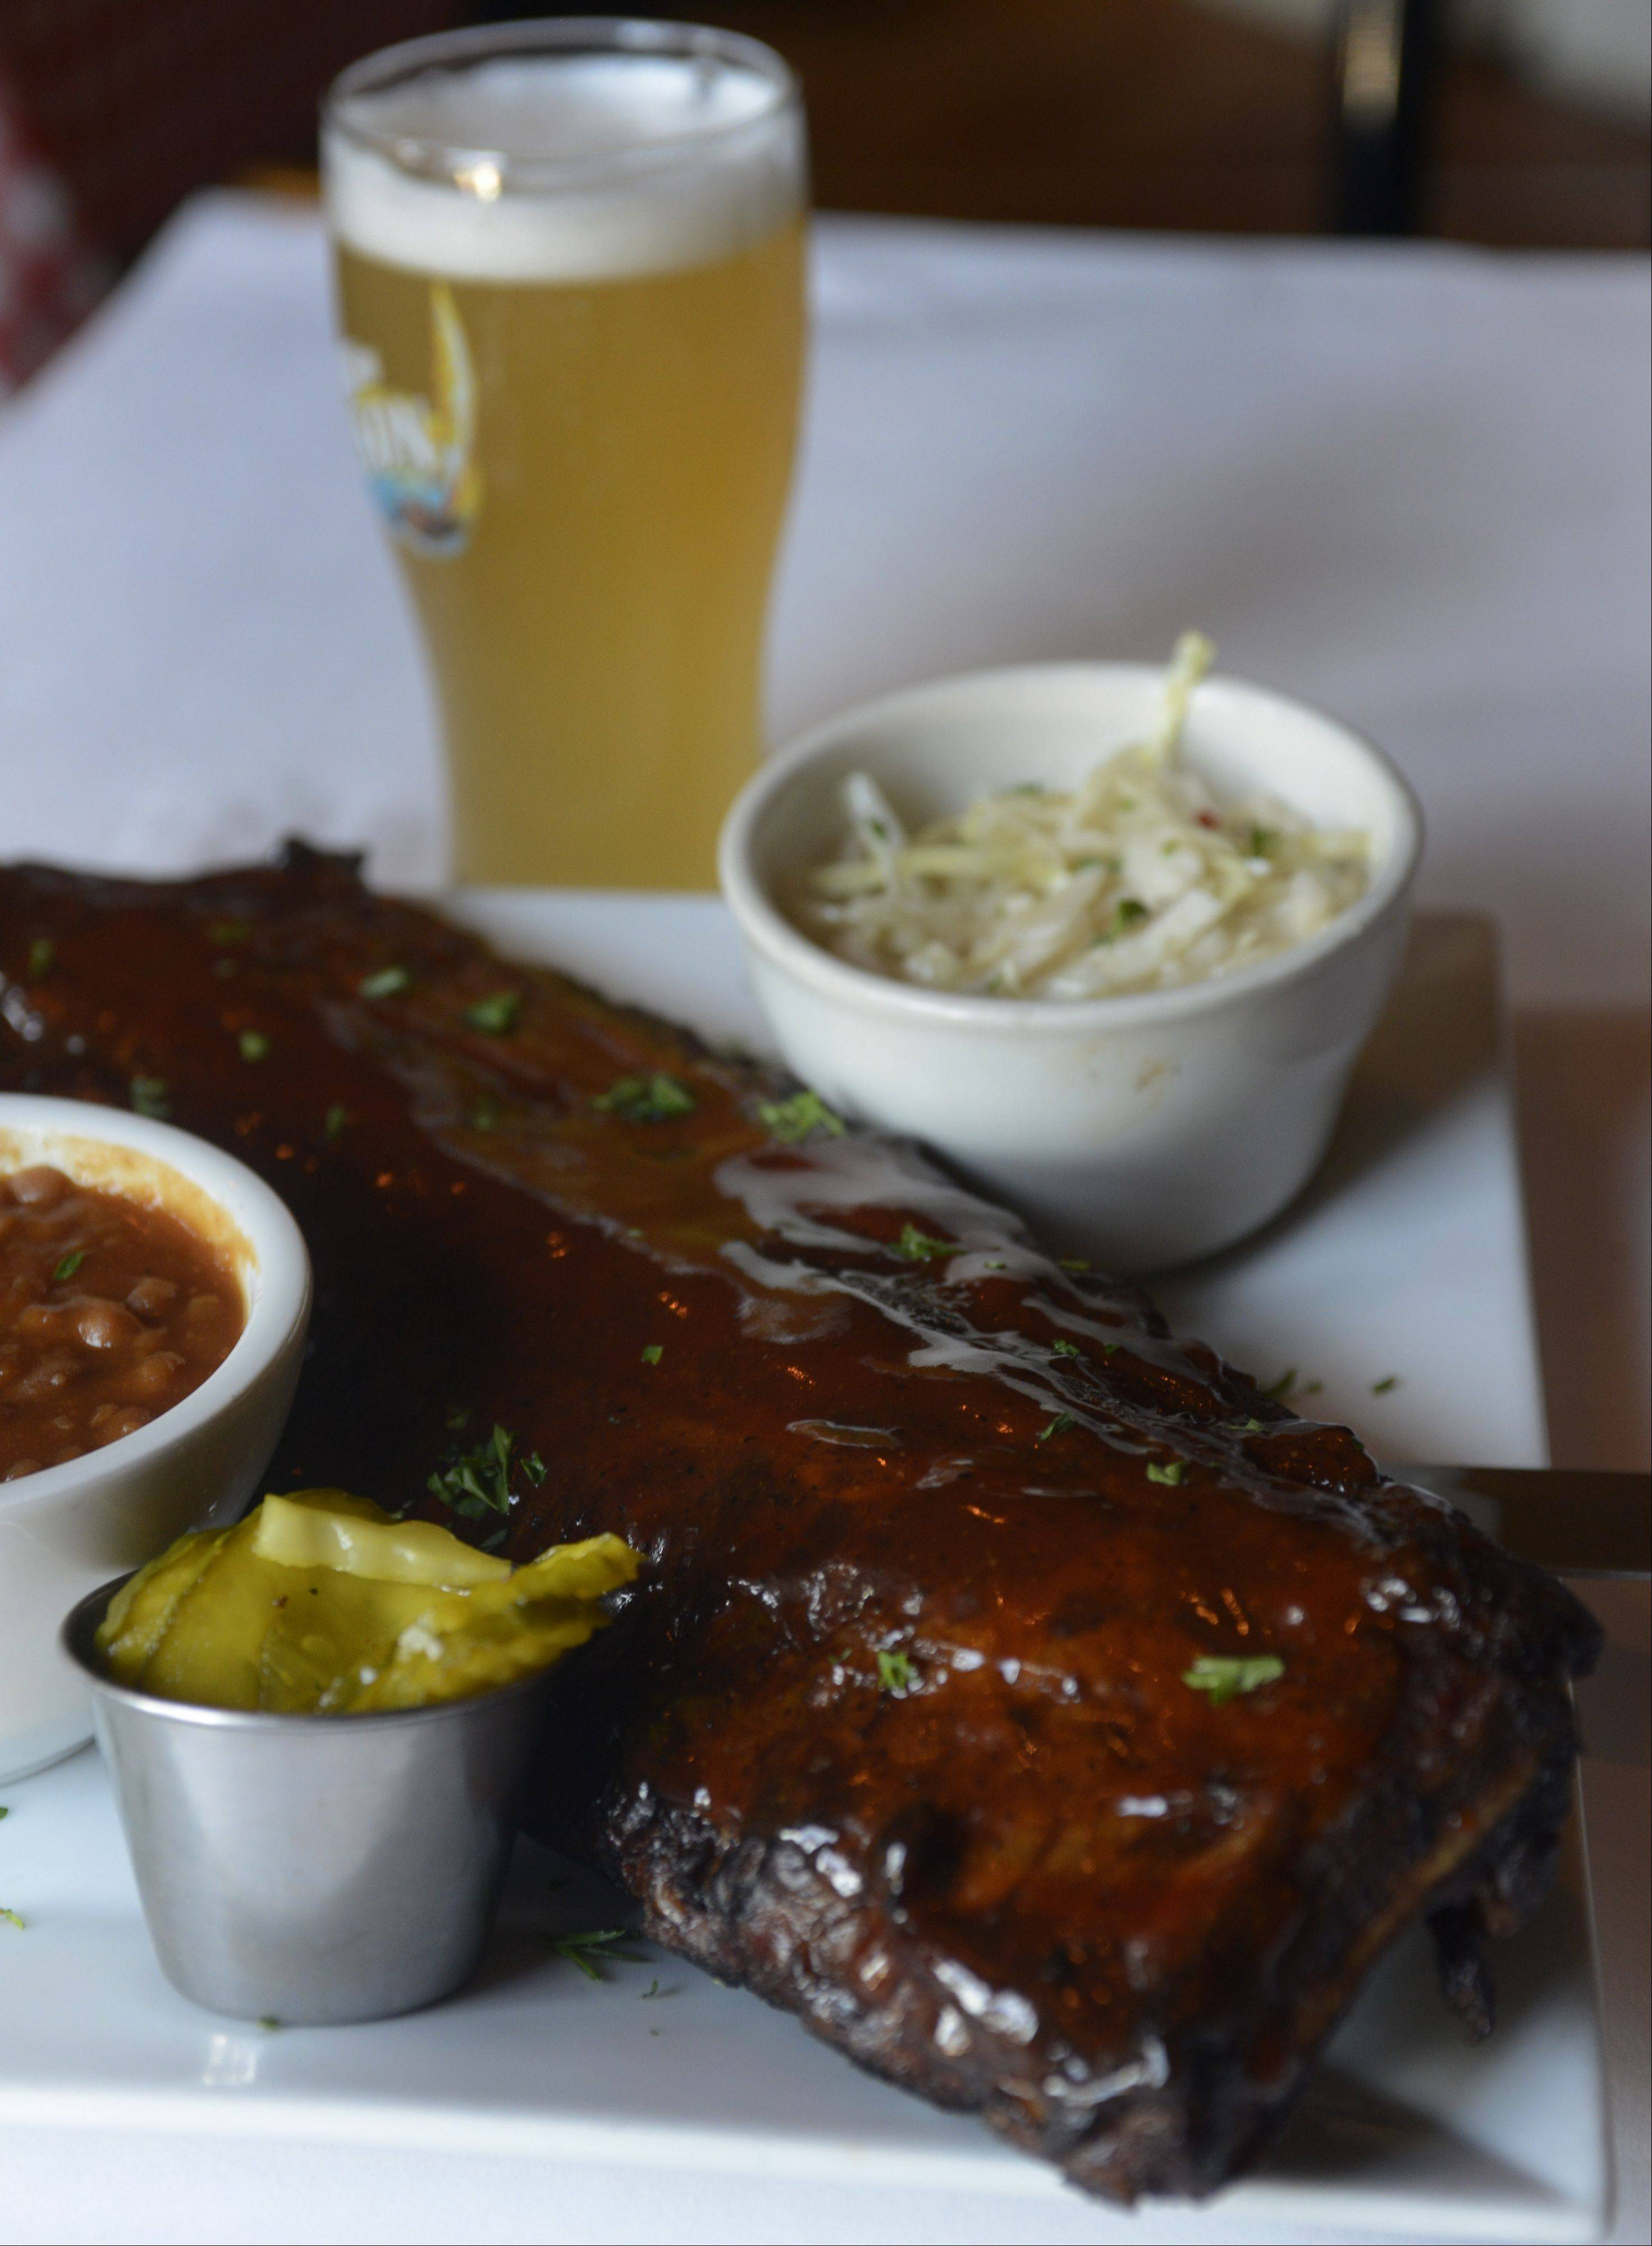 Baby back ribs pair perfectly with coleslaw and a cold brew at Gugg's Roadhouse in Vernon Hills.